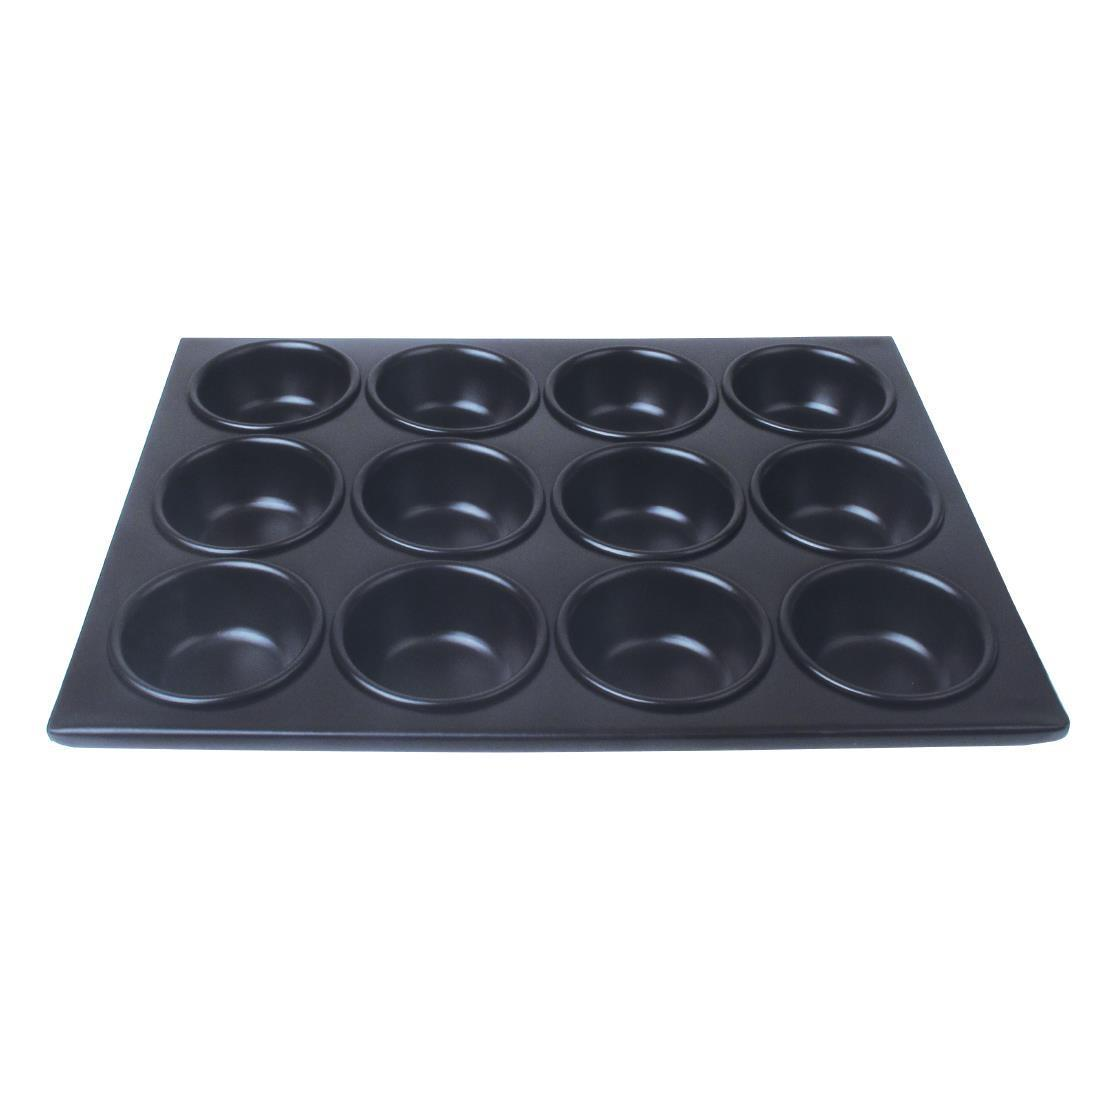 Vogue Aluminium Non-Stick Muffin Tray 12 Cup - Each - C562